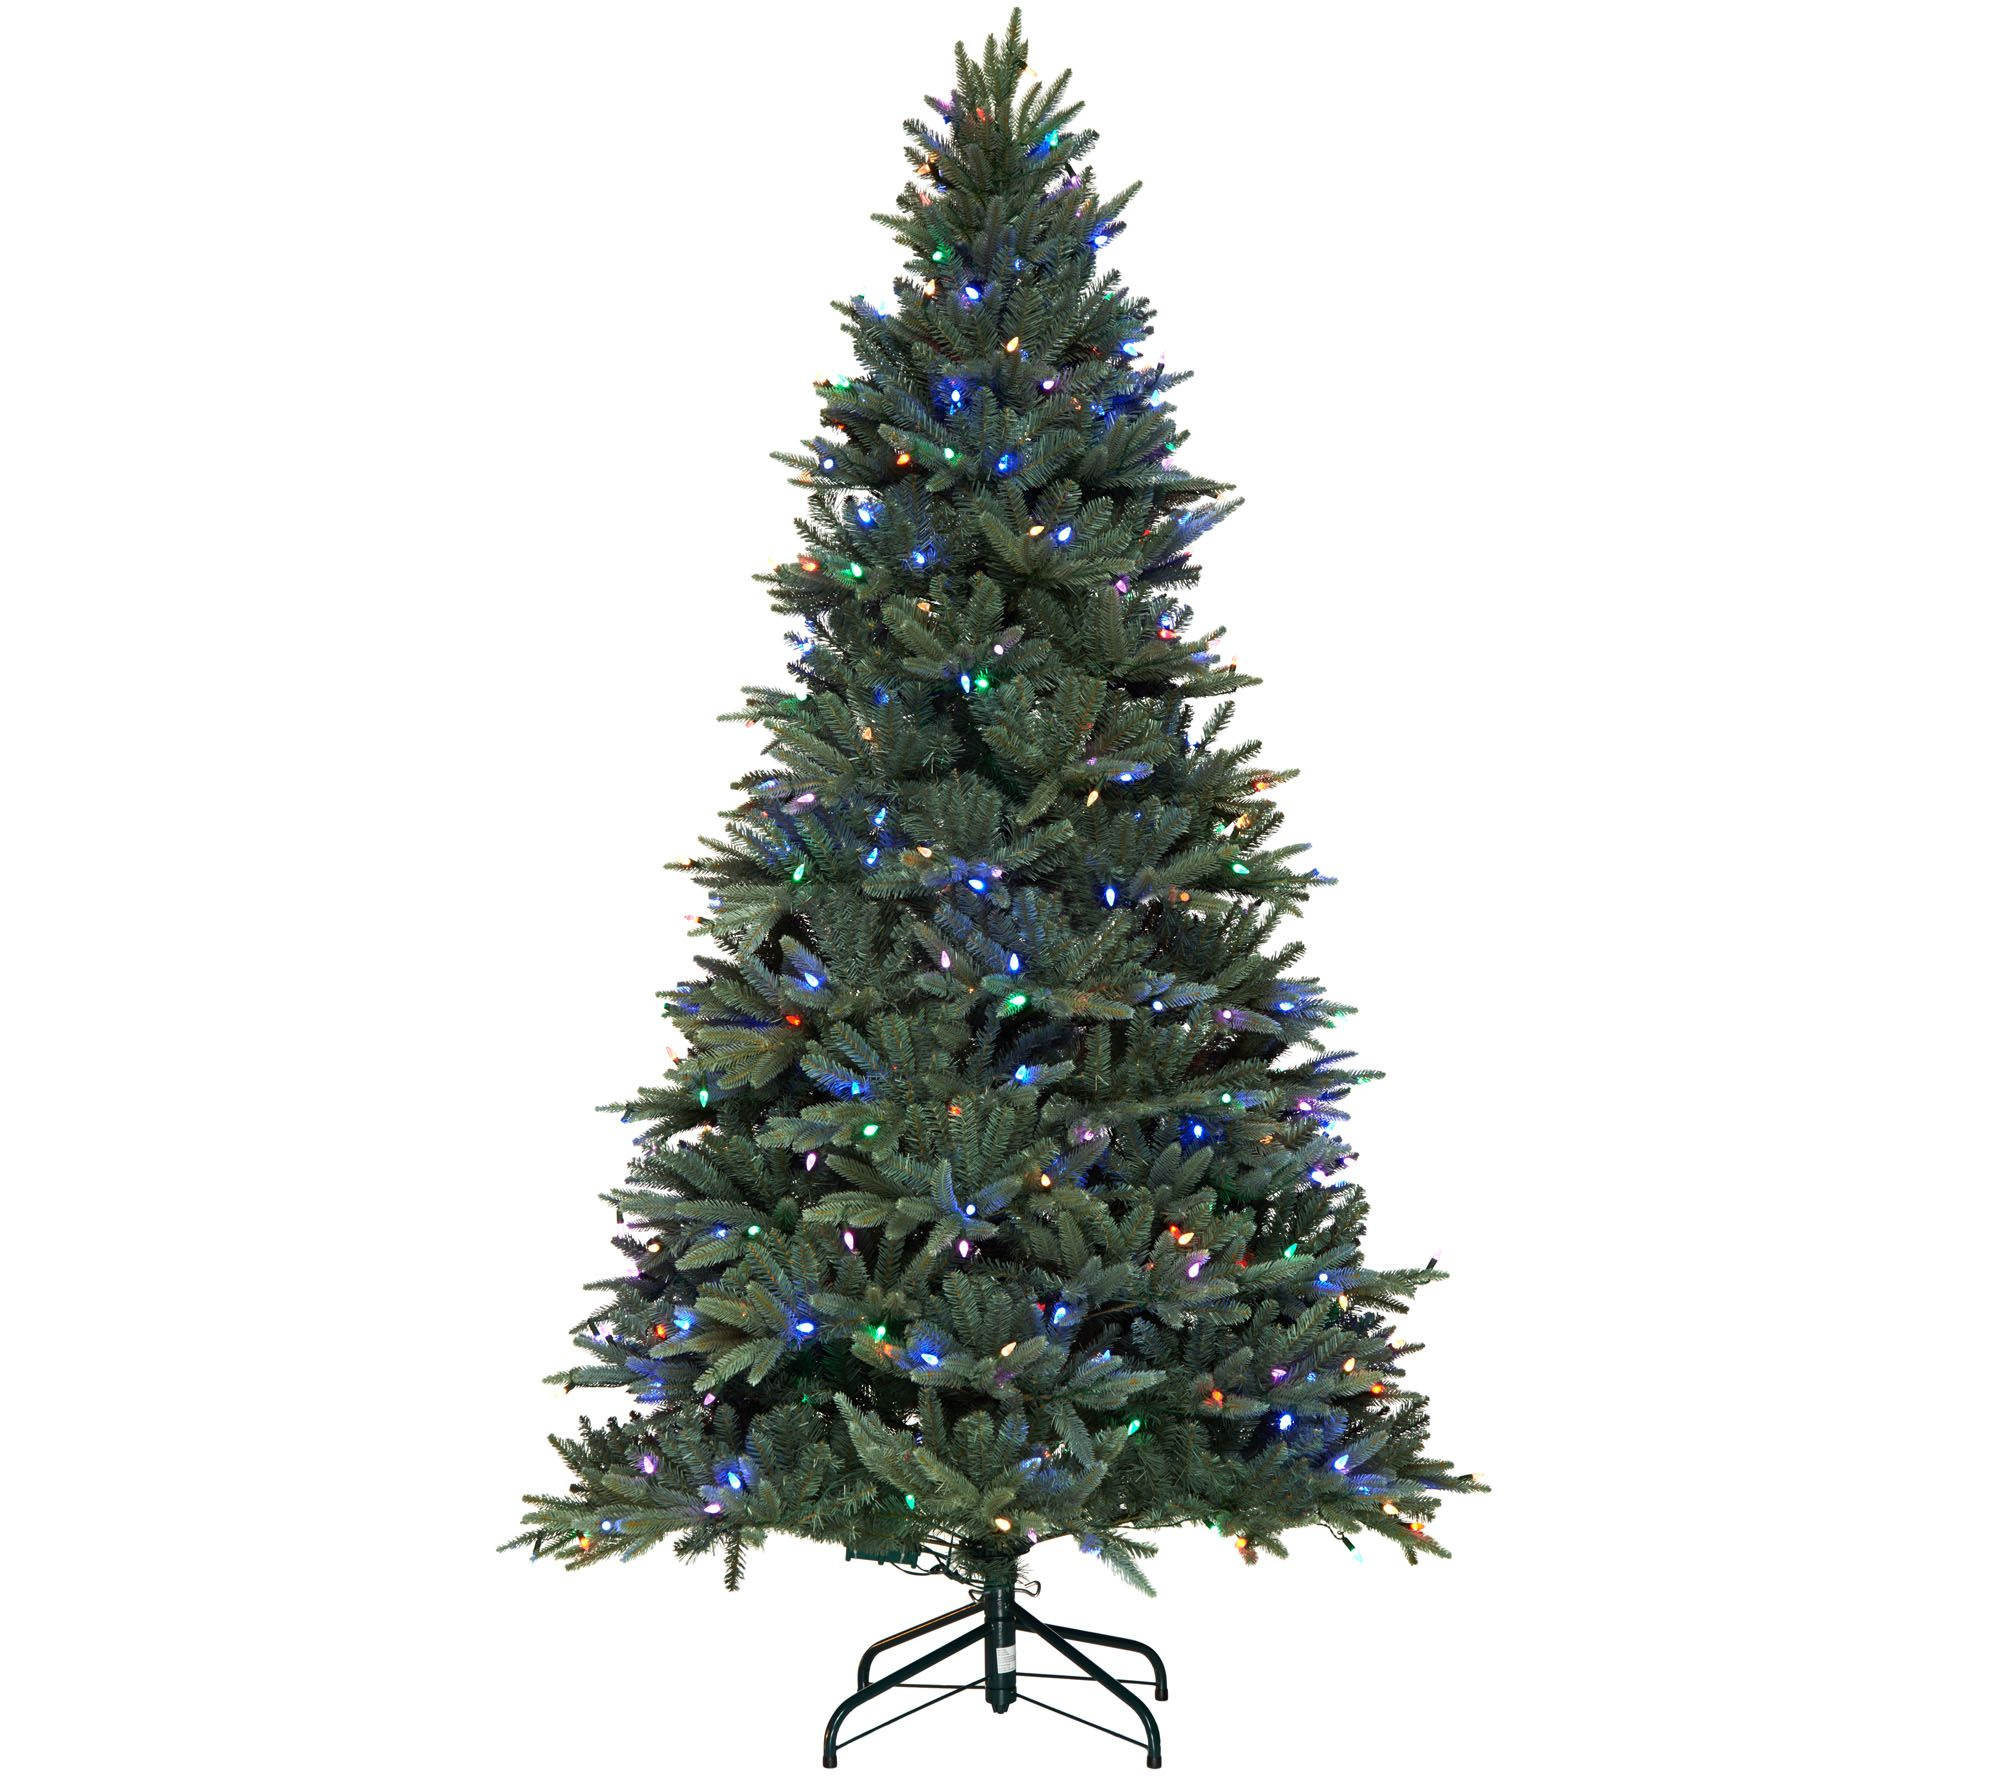 Santa's Best RGB Blue Spruce Christmas Tree w/64 Functions — QVC.com